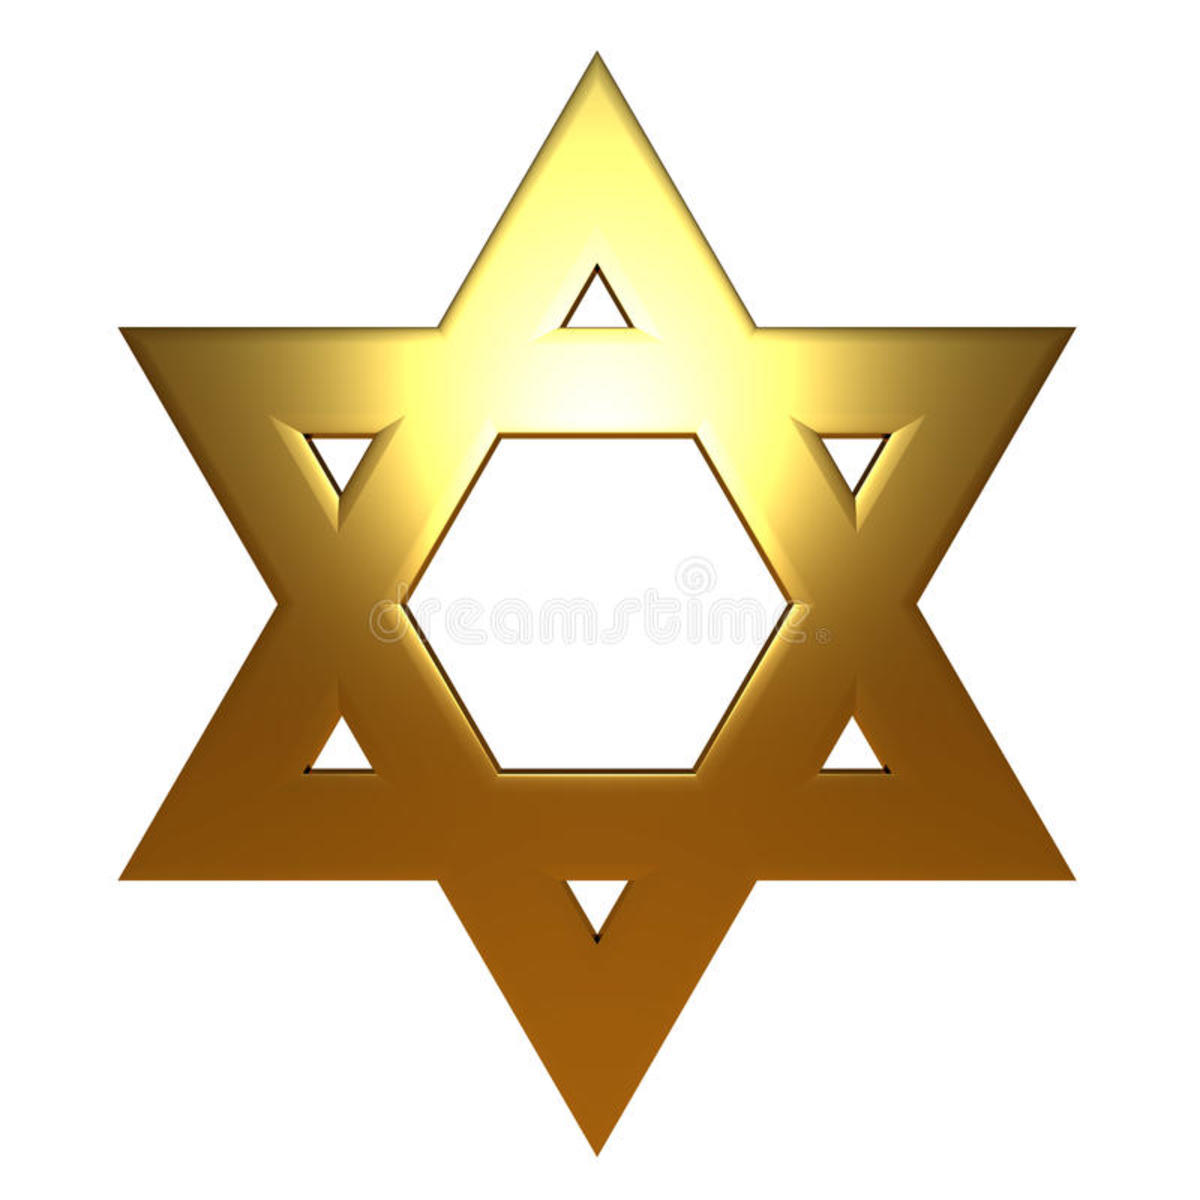 These Include The Mishnah Torah Tenach Commandments Of And 613 Mitzvot Give Adherents